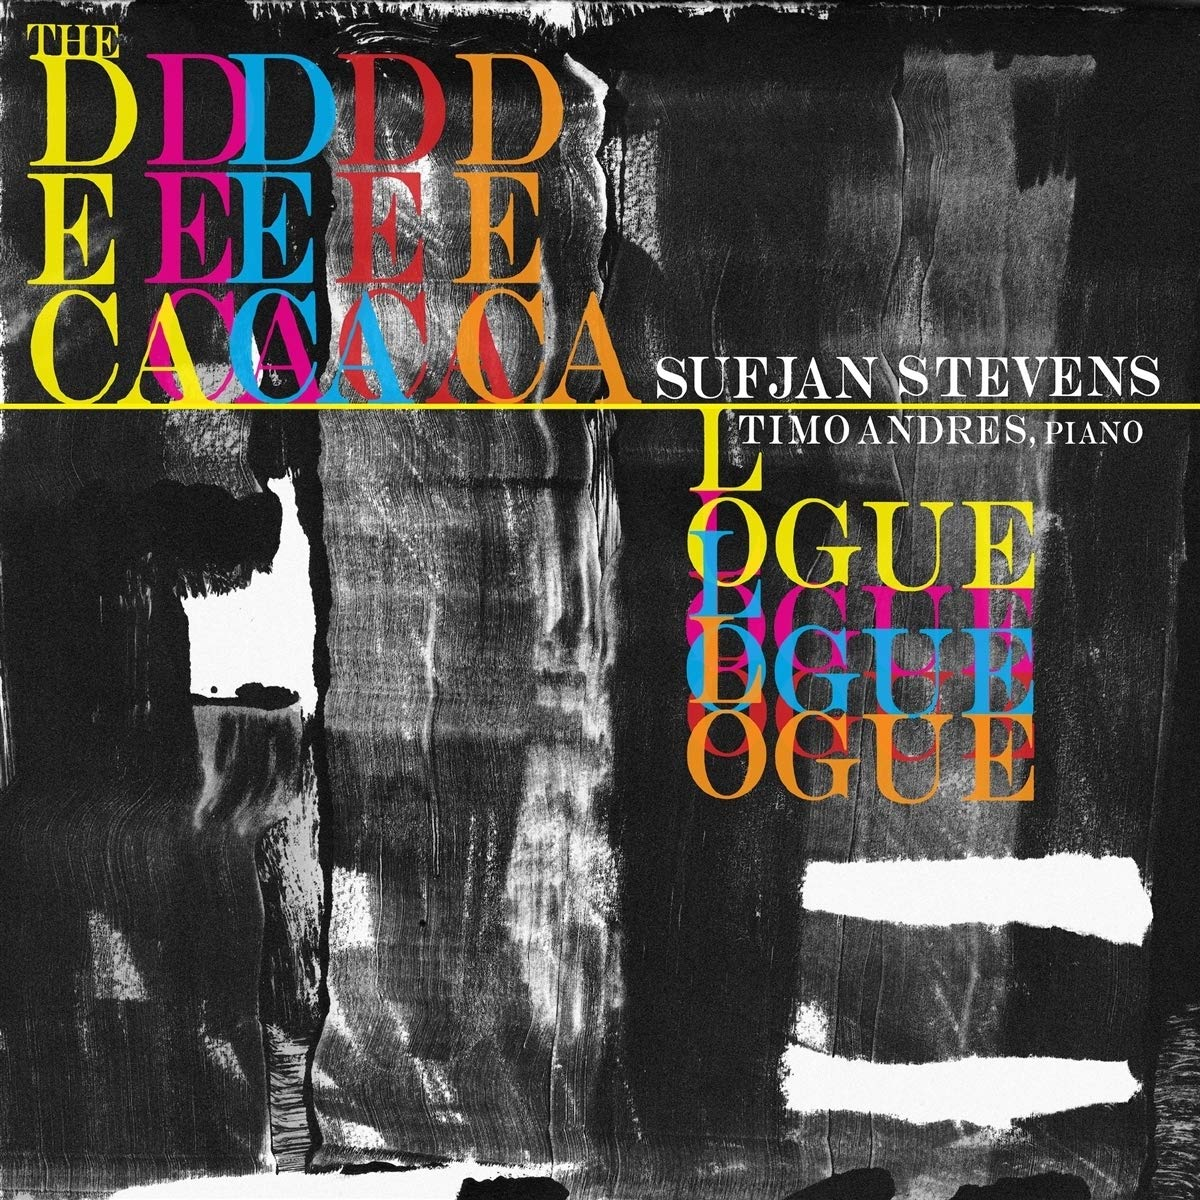 Sufjan Stevens & Timo Andres - The Decalogue [LP]